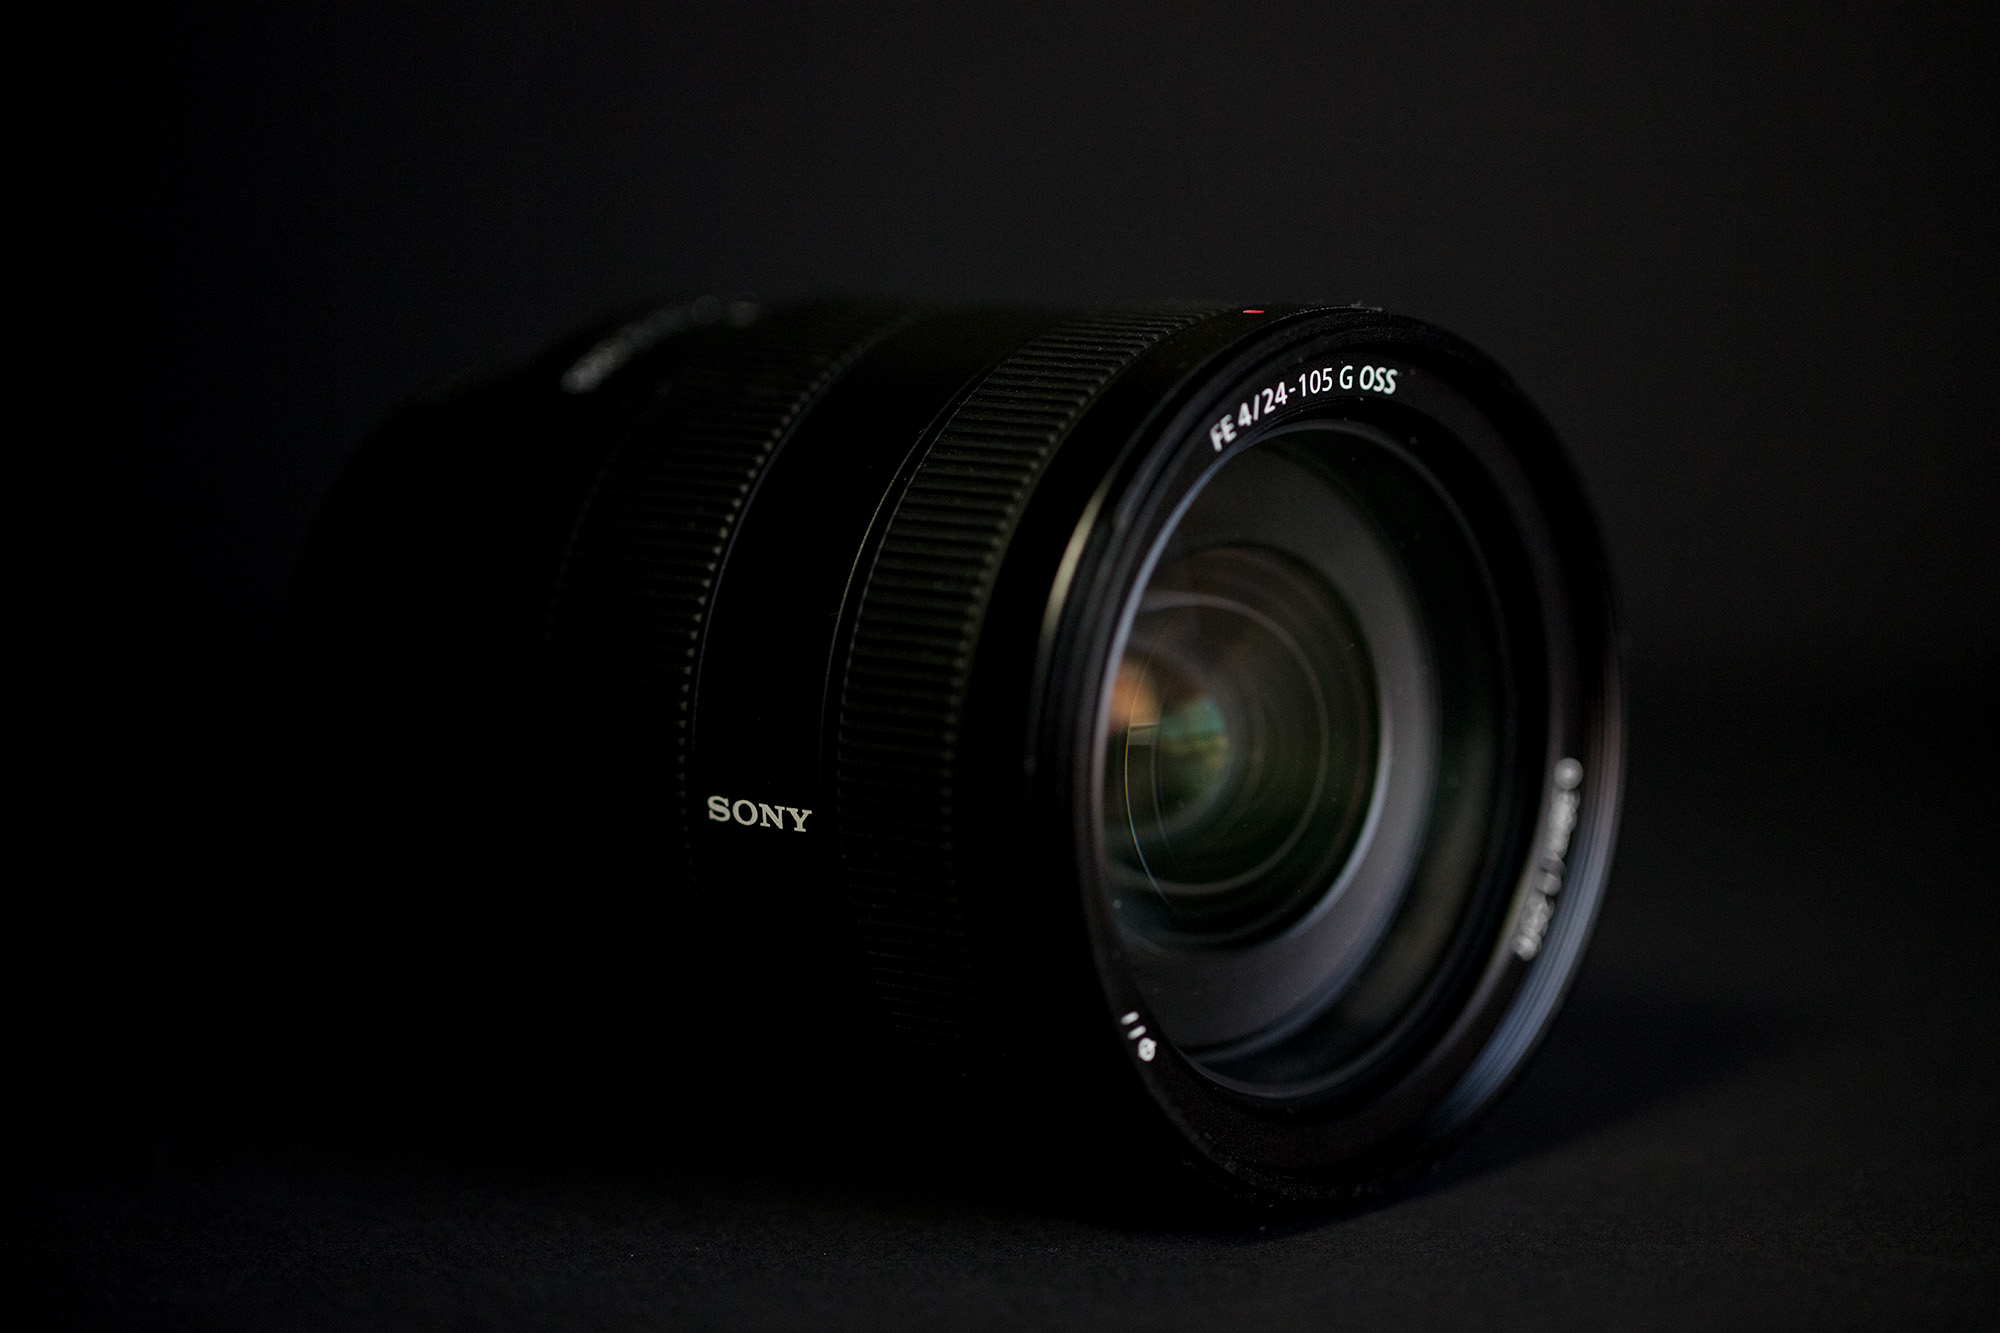 Sony MTF Testing 24-105mm